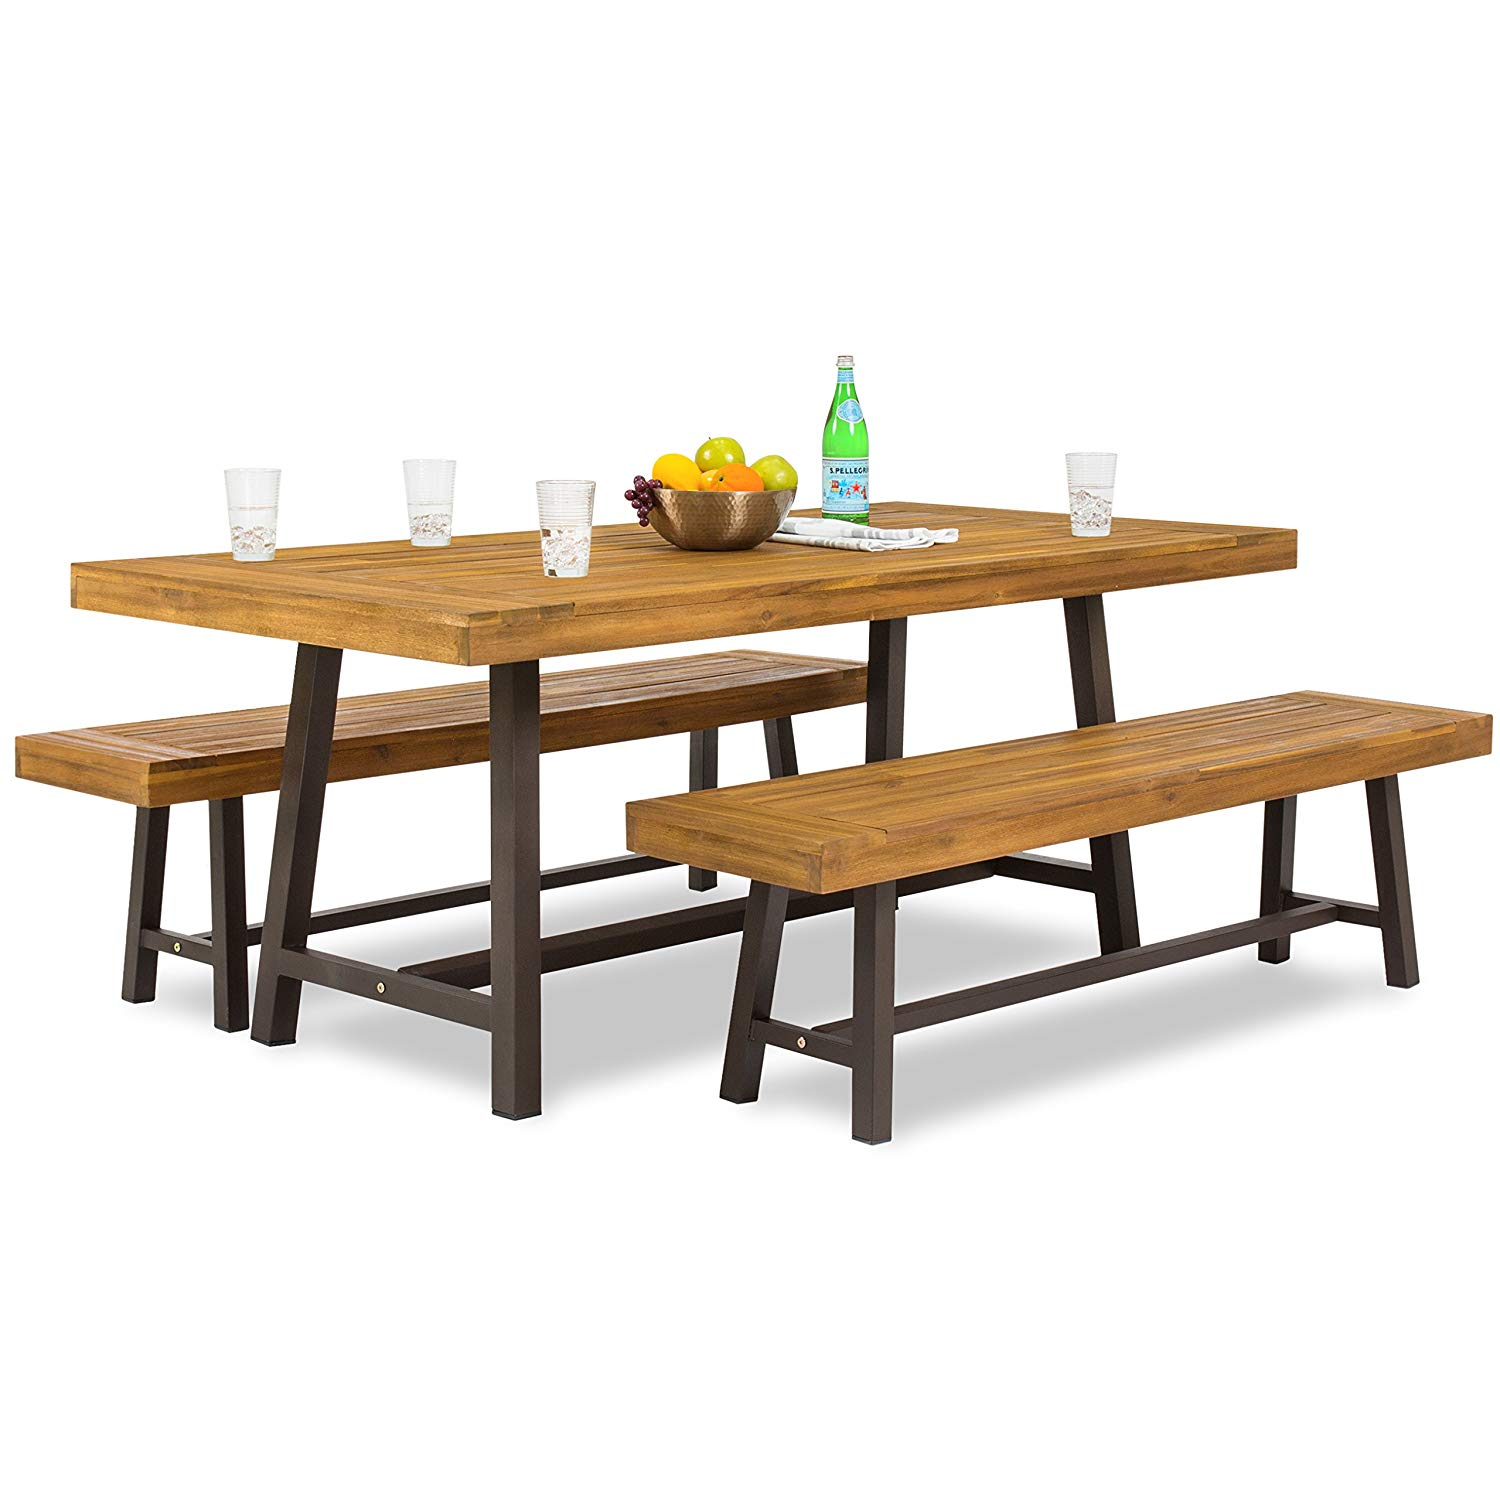 Care 4 Home LLC 3 Piece Outdoor Picnic Park Set, Large Rectangular Table 2 Backless Benches, Durable Metal Base, Weather Resistant, Ideal for Garden, Outdoor Furniture + Expert Guide